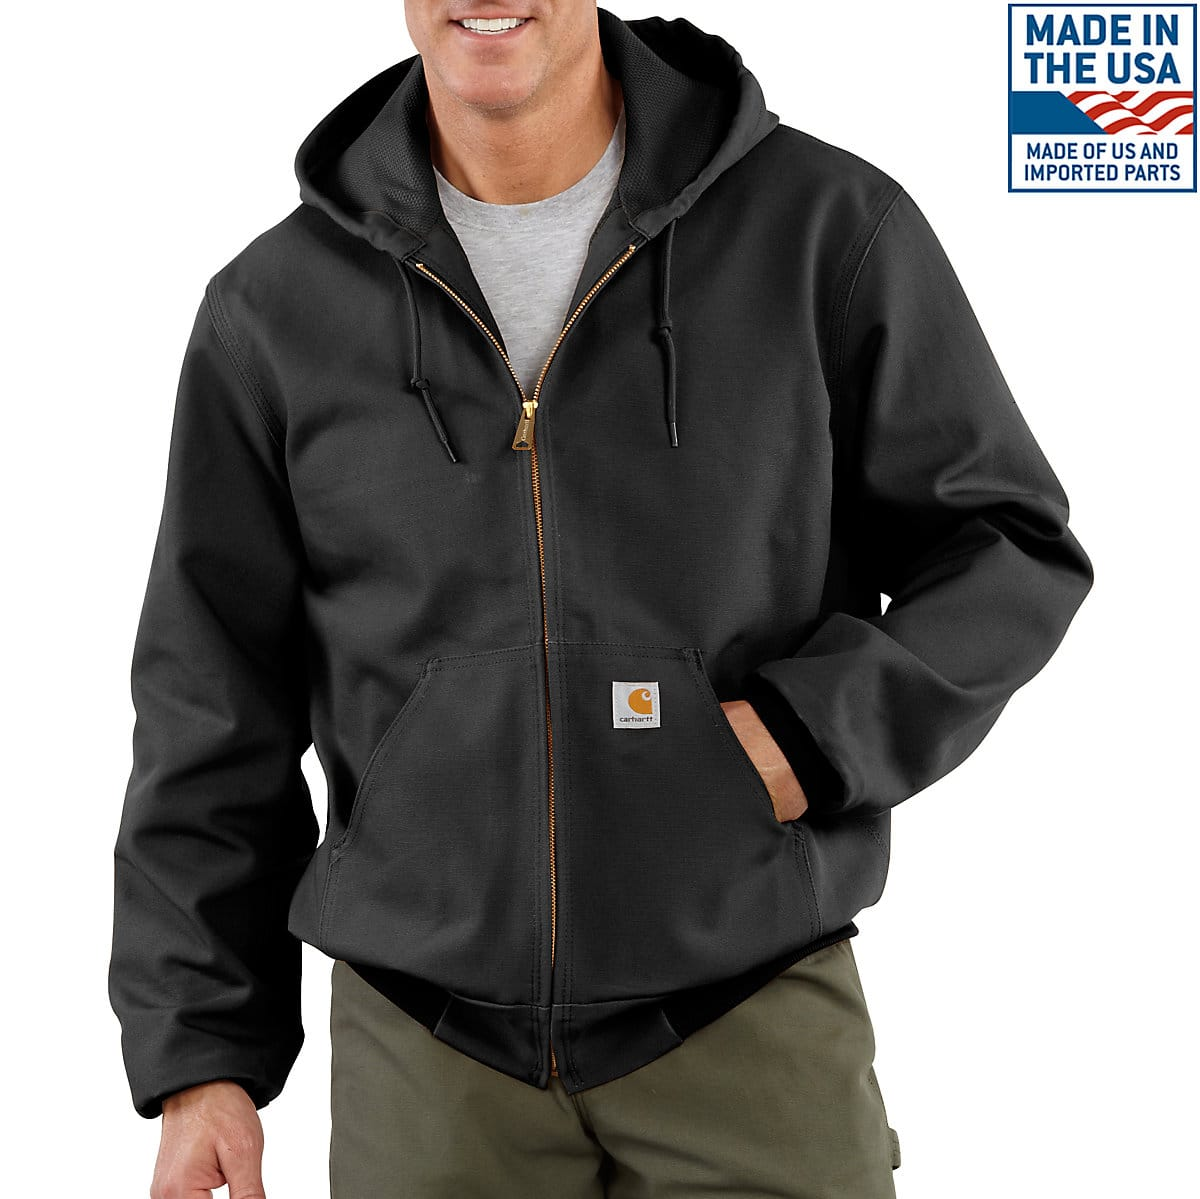 8e4d46f4a Men's Duck Thermal-Lined Active Jac J131 | Carhartt